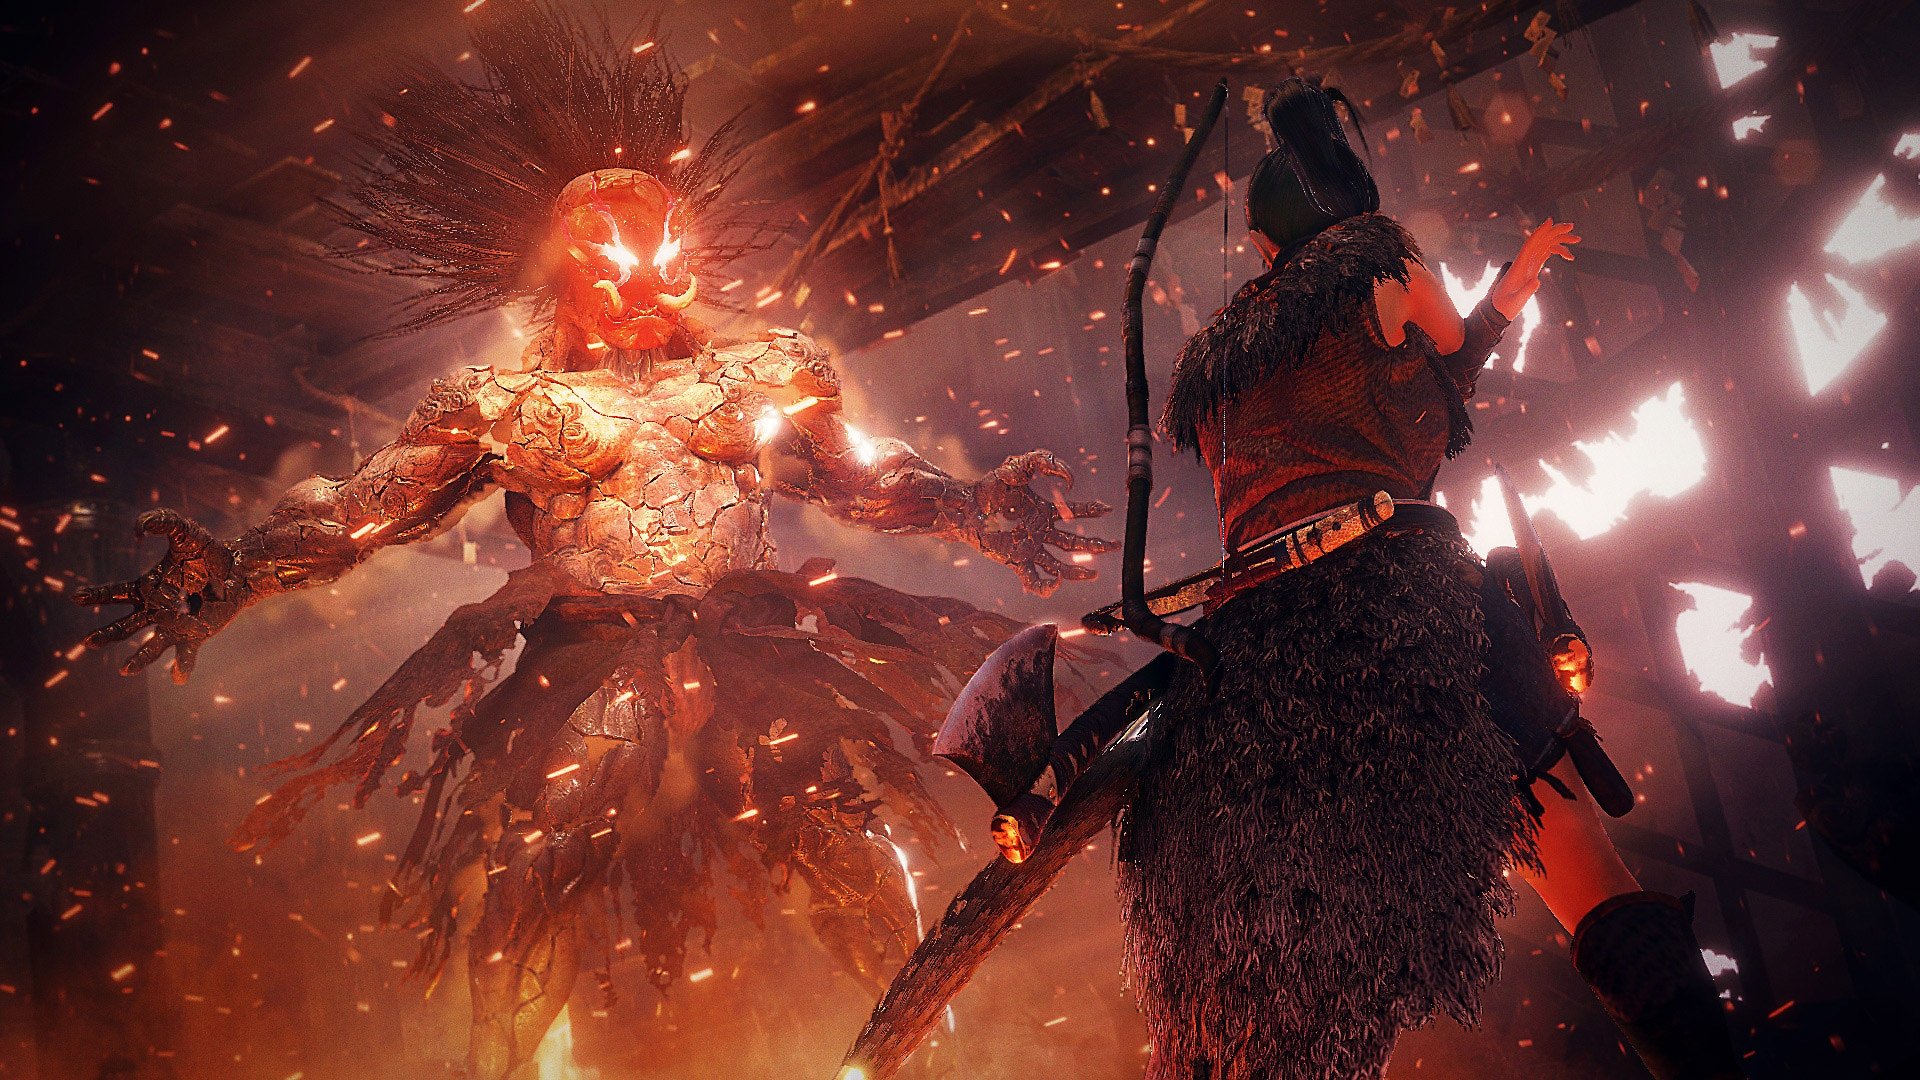 nioh 2 screenshot war and demons